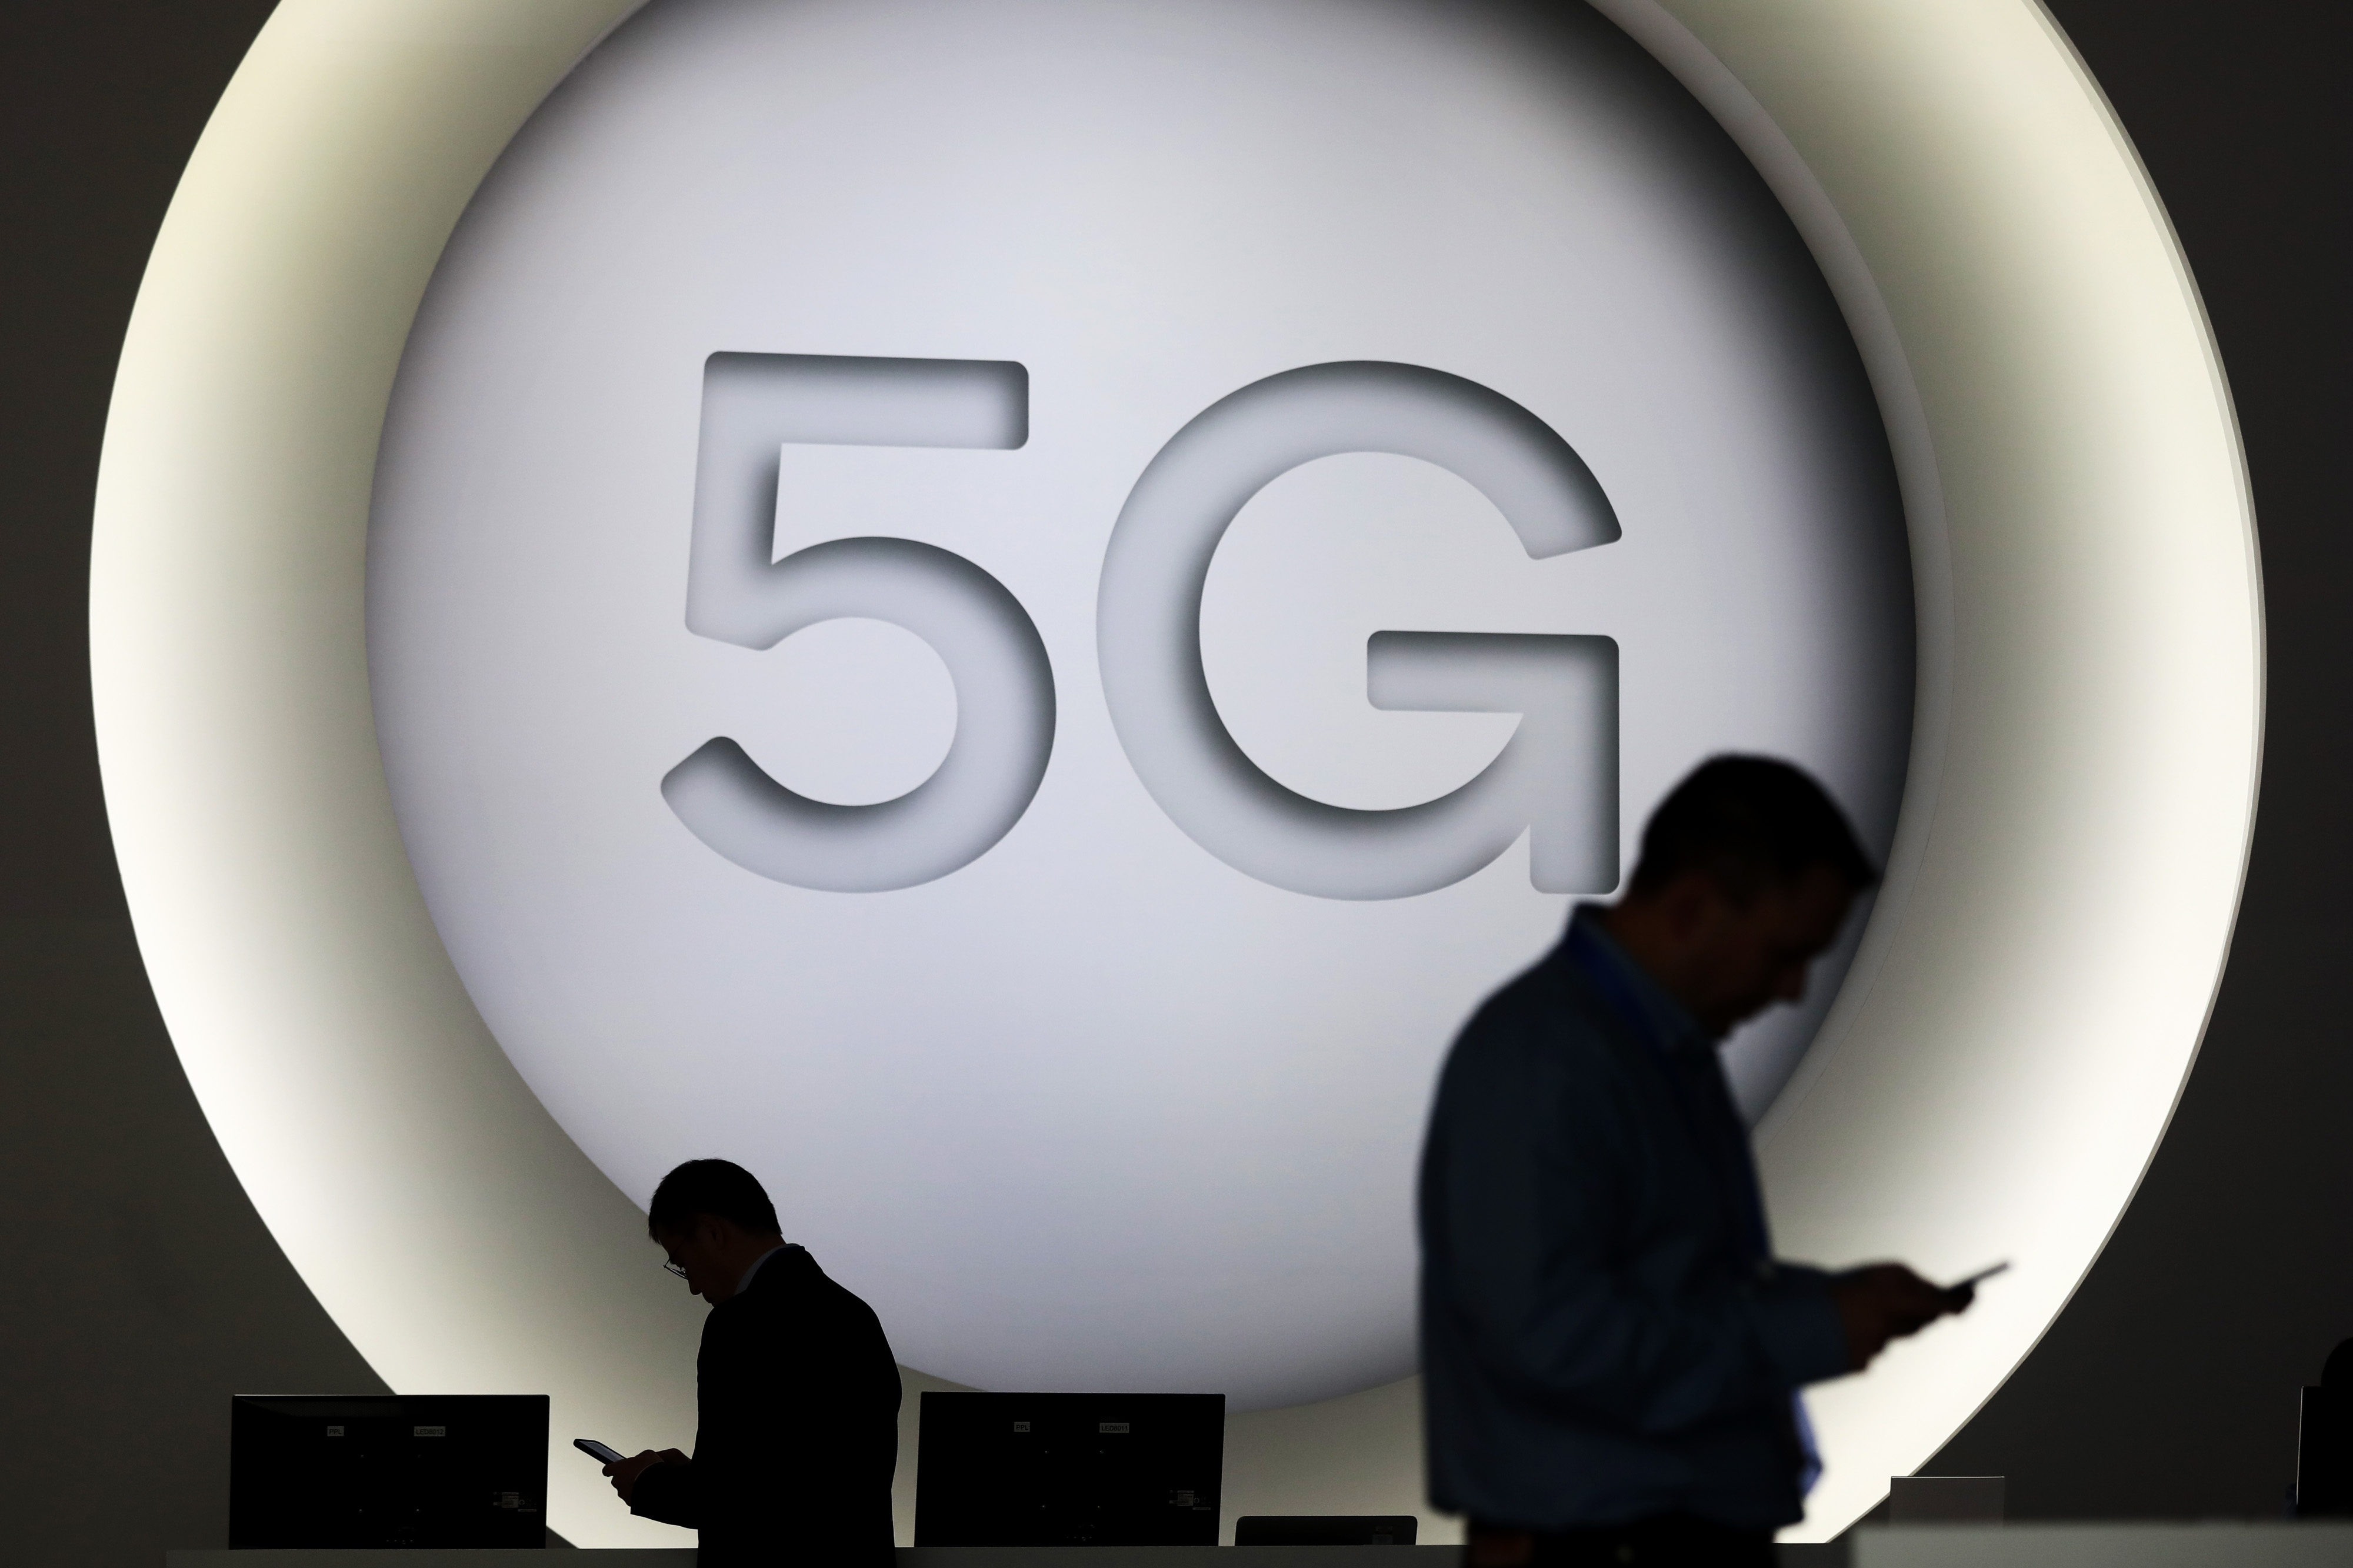 Telus warns of 'material' risk if Canada bars Huawei from 5G